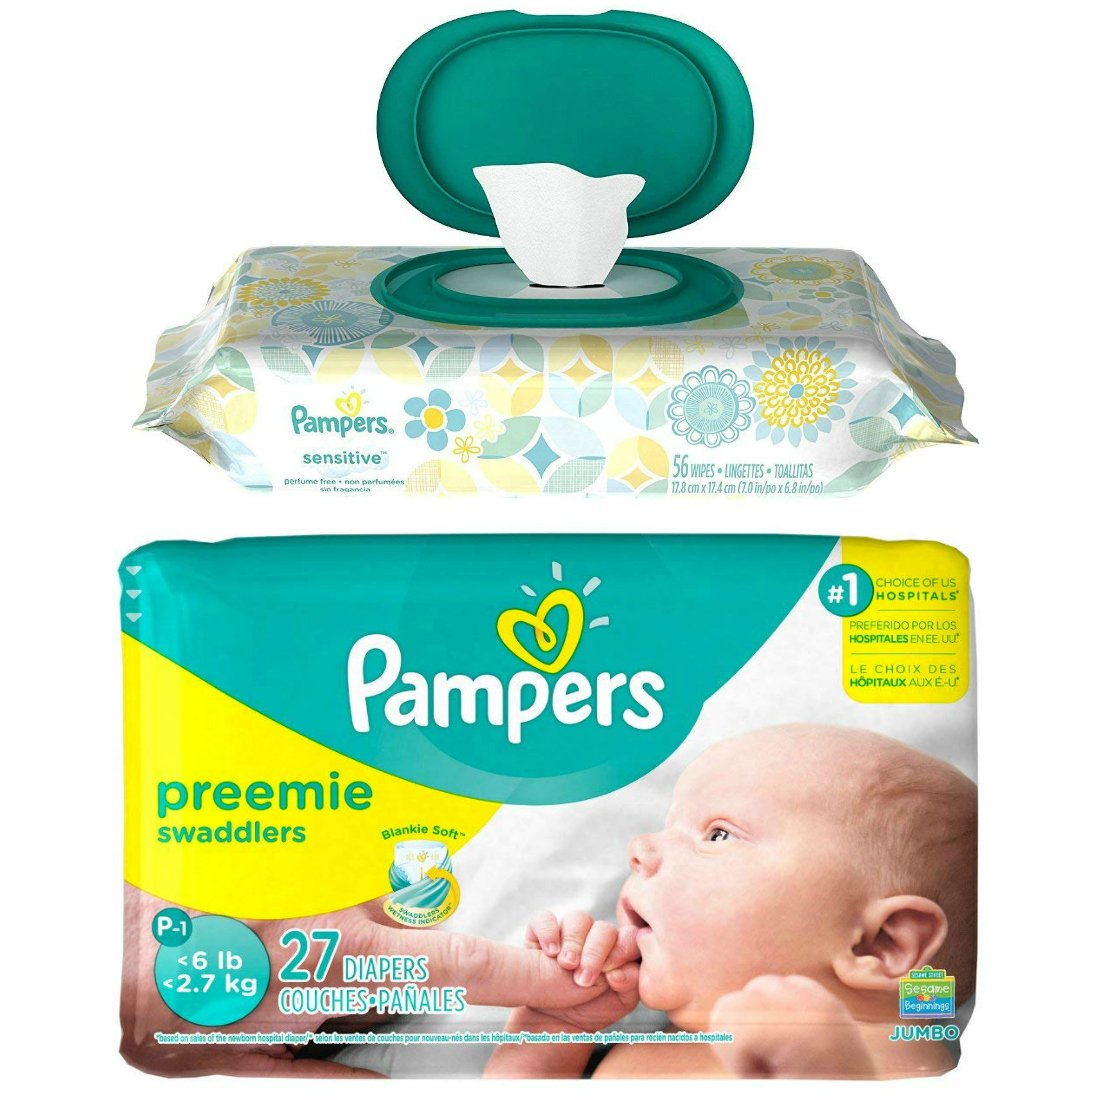 Diaper/Baby Wipe Travel Pack | Includes Pampers Swaddlers (Preemie - up to 6 lbs) | 27 Count and Sensitive...